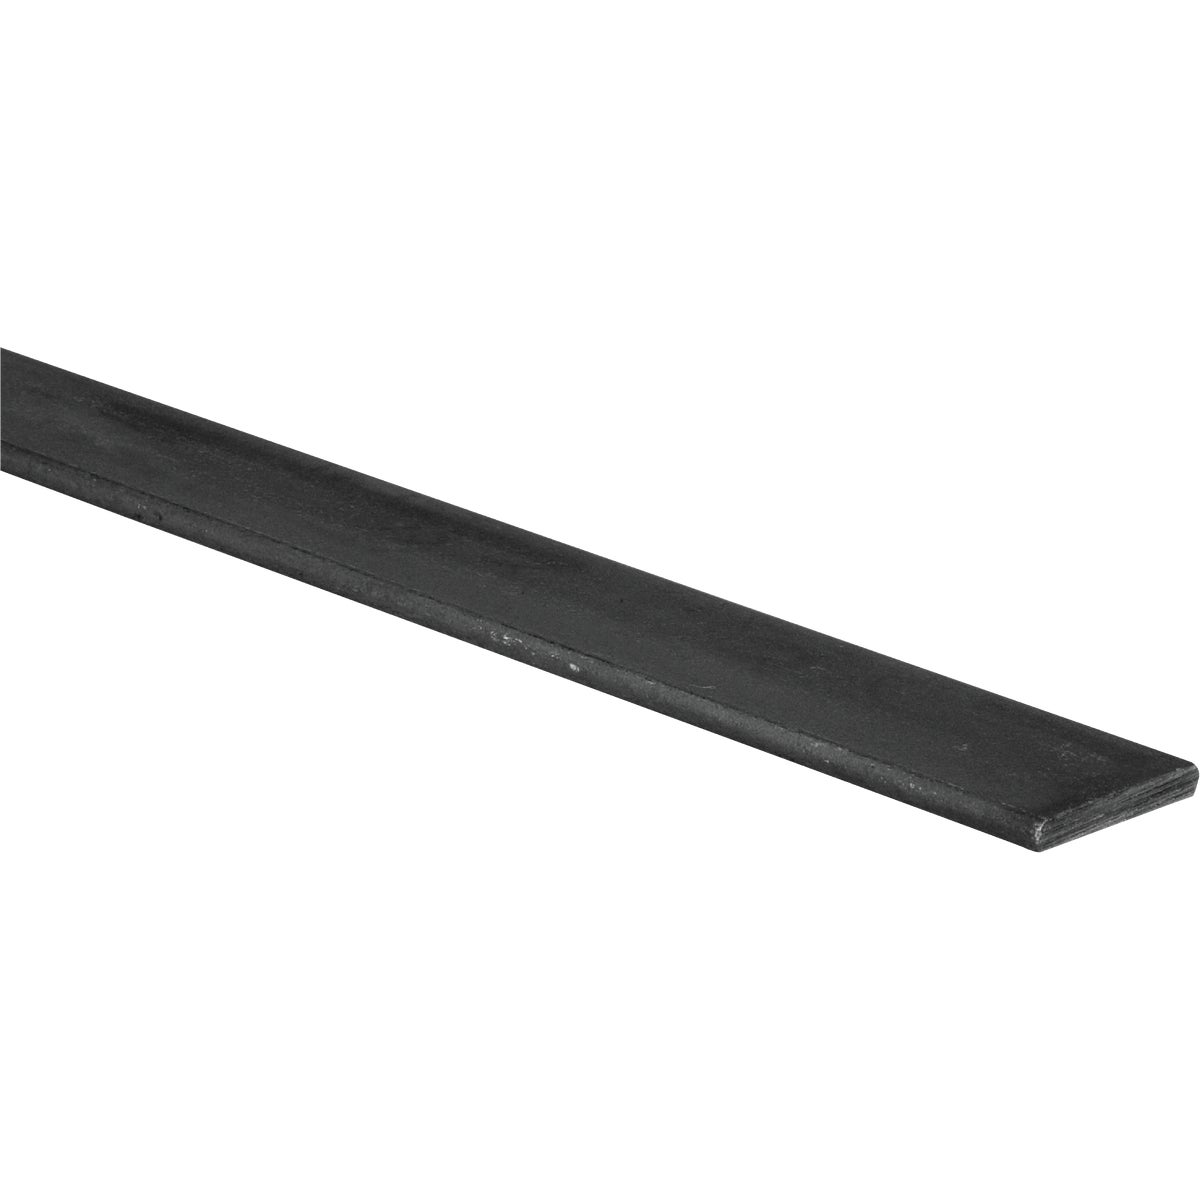 1/8X3/4X6' HR FLAT BAR - N215541 by National Mfg Co